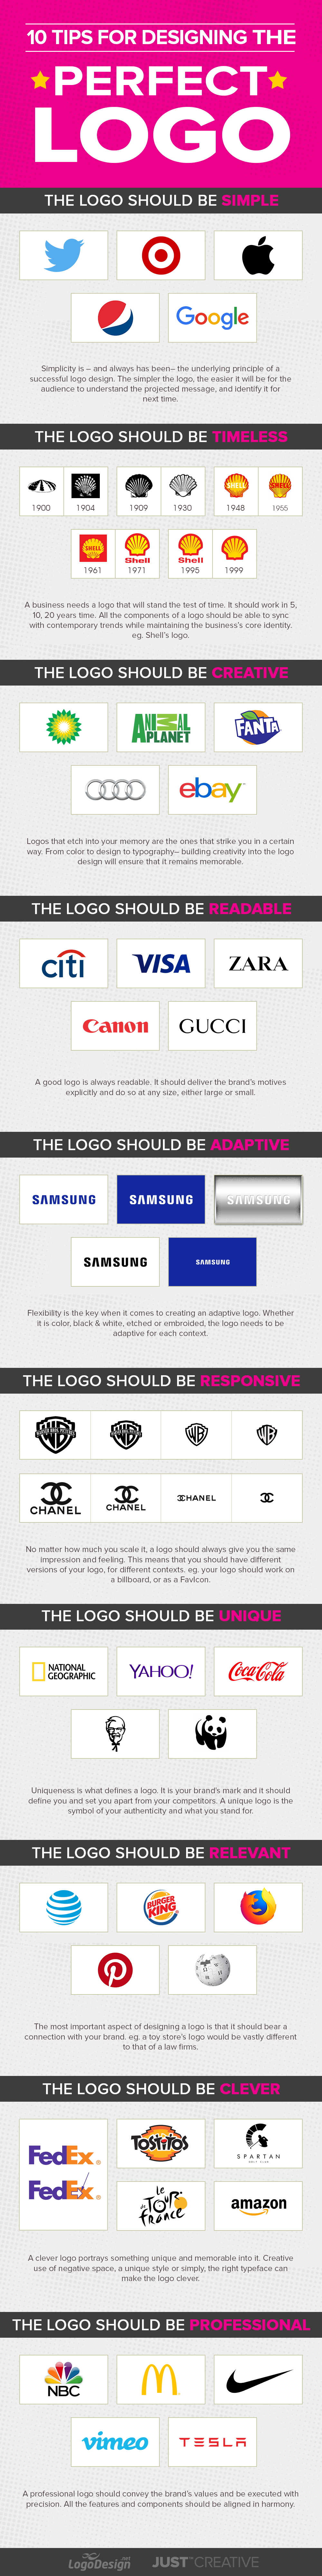 10 Tips For Designing The Perfect Logo by Just Creative